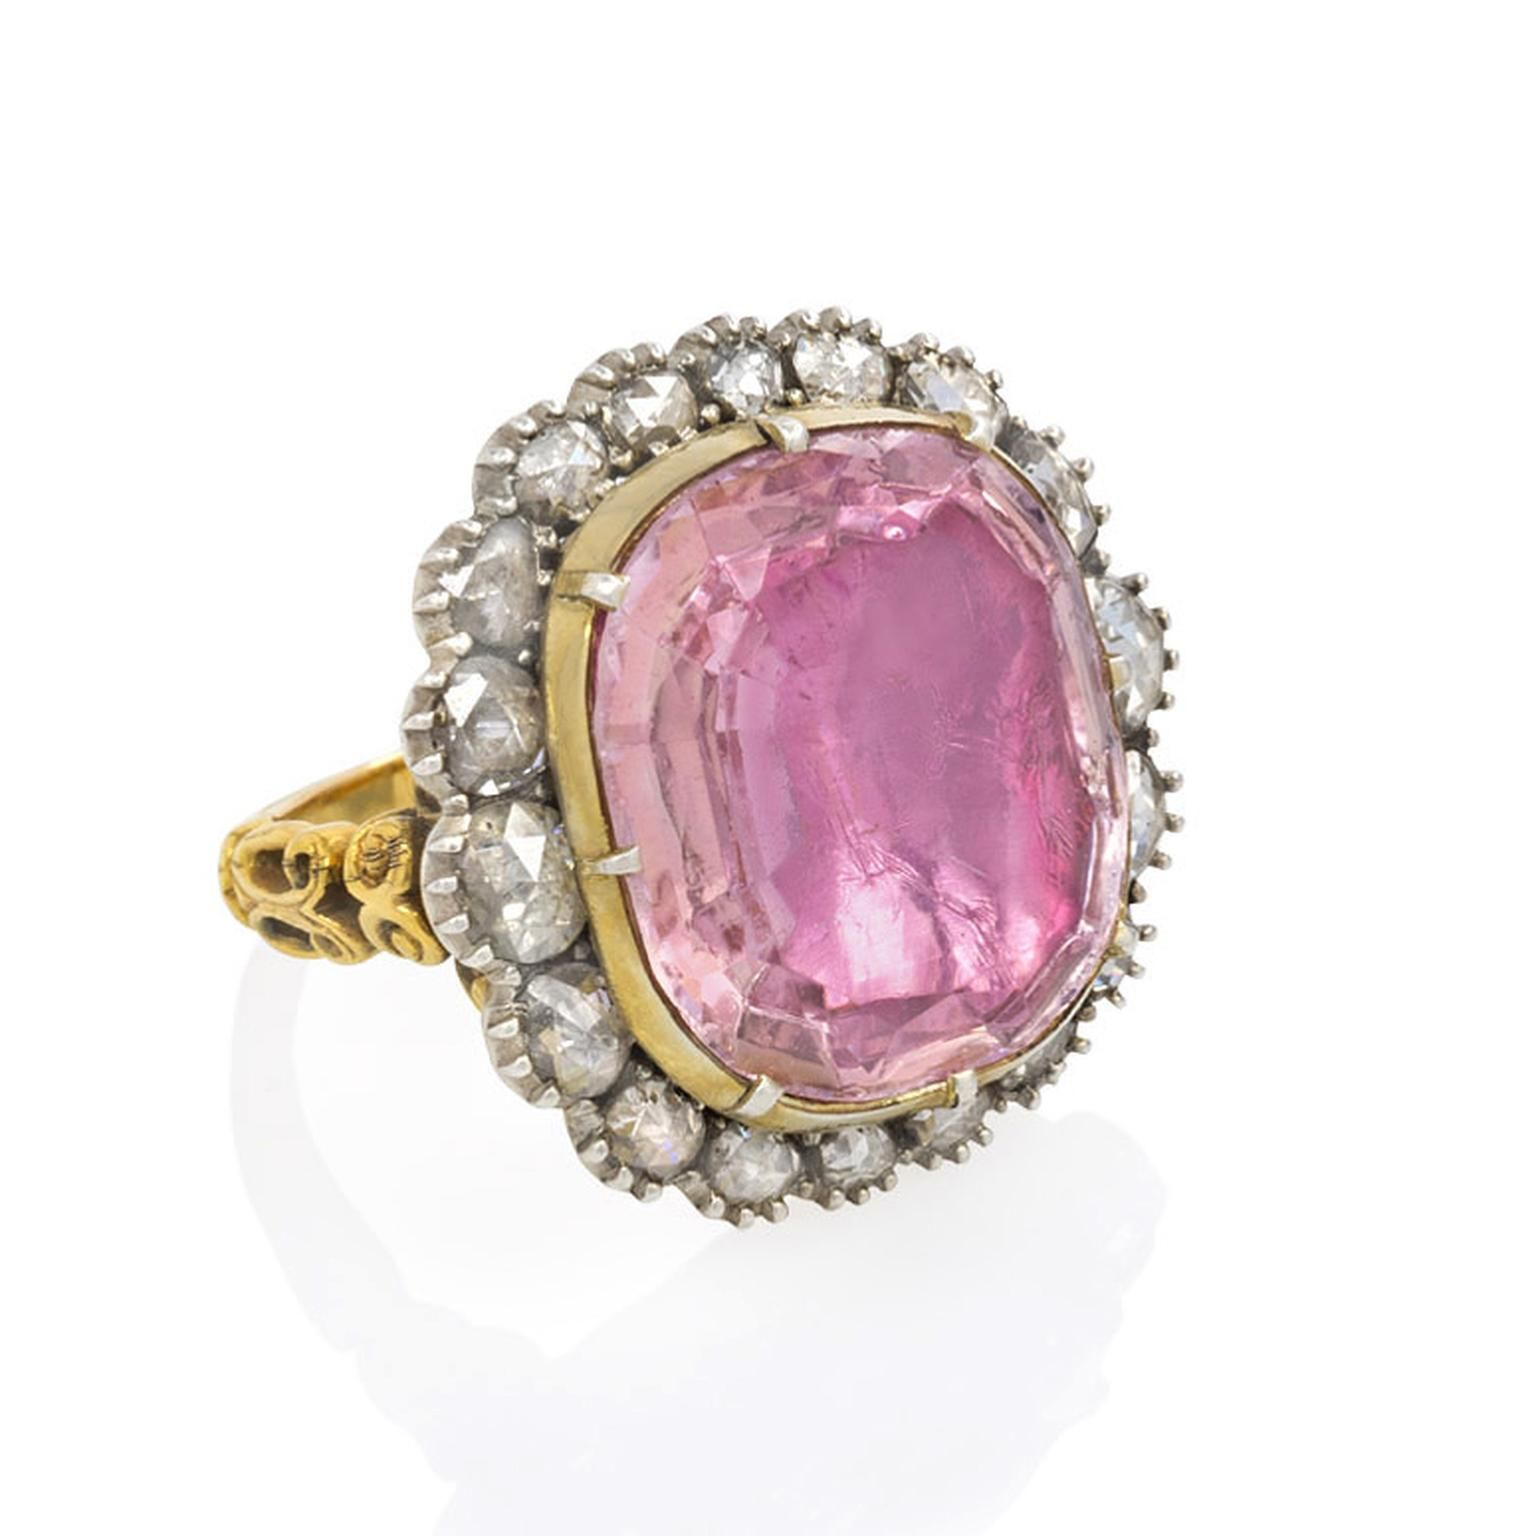 Kentshire antique cushion-cut, foiled pink topaz ring | Diseño ...